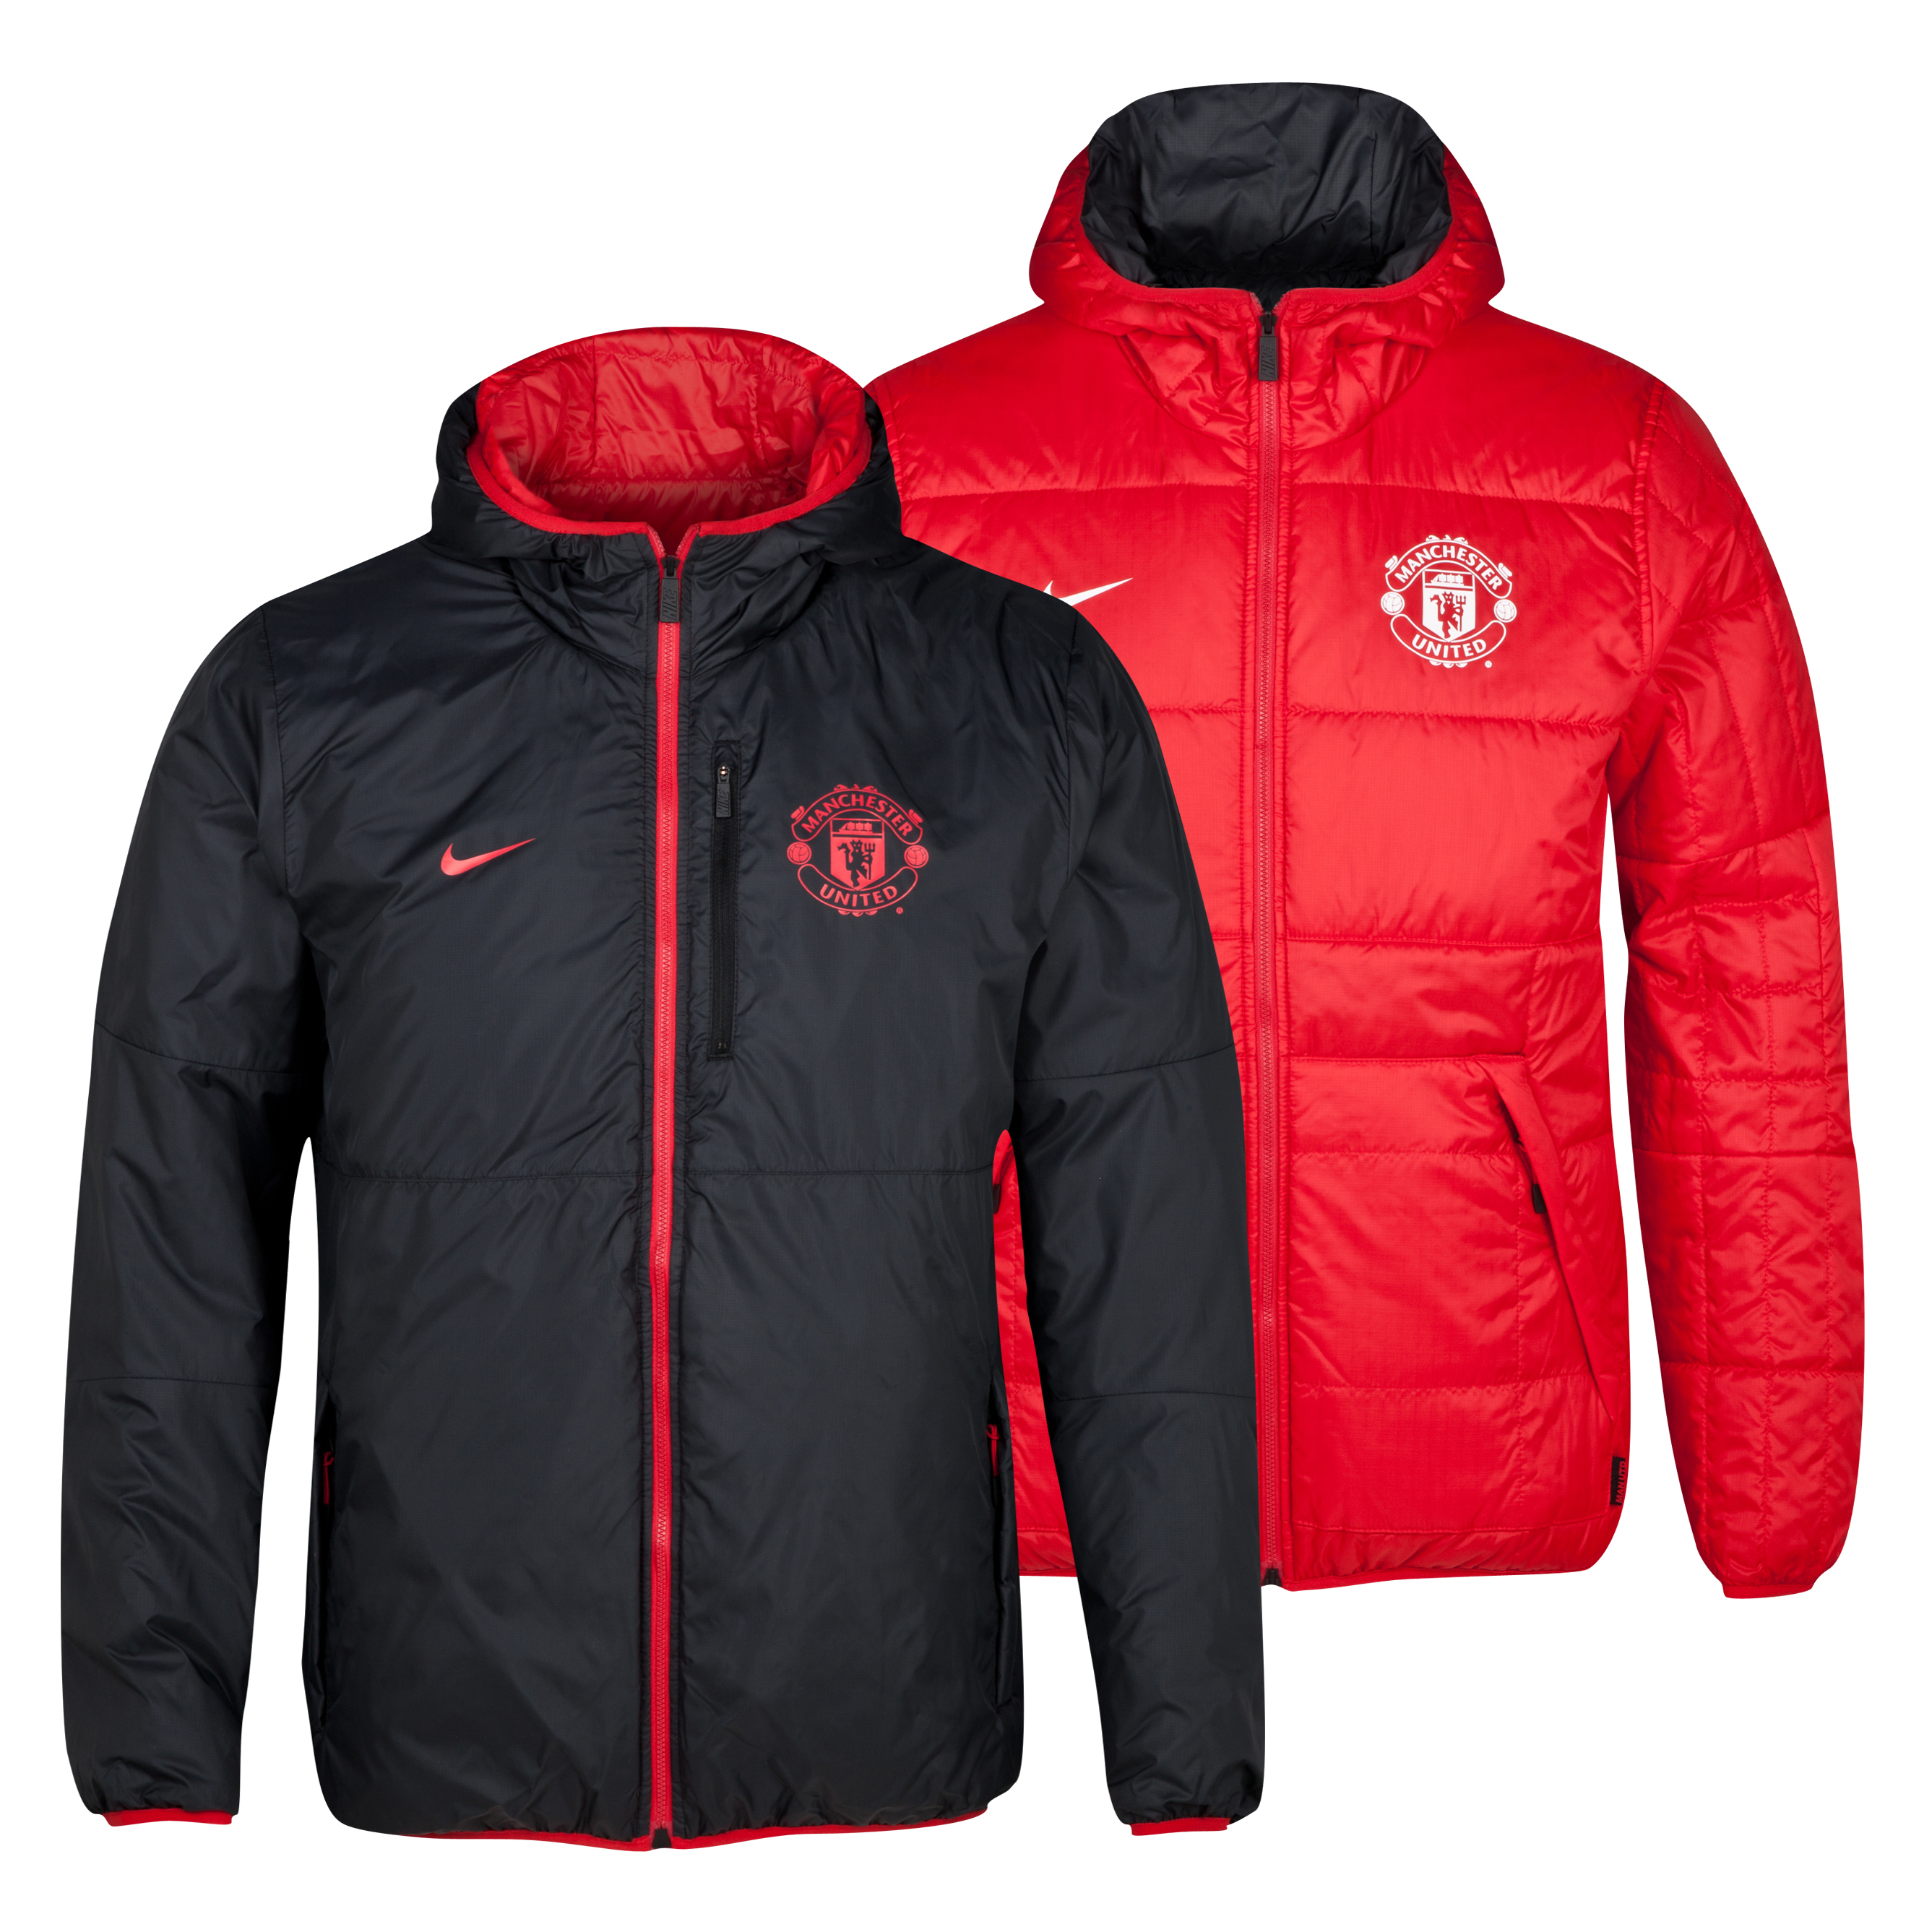 Veste Reversible Alliance Manchester United - Rouge Diablo/Noir/Blanc